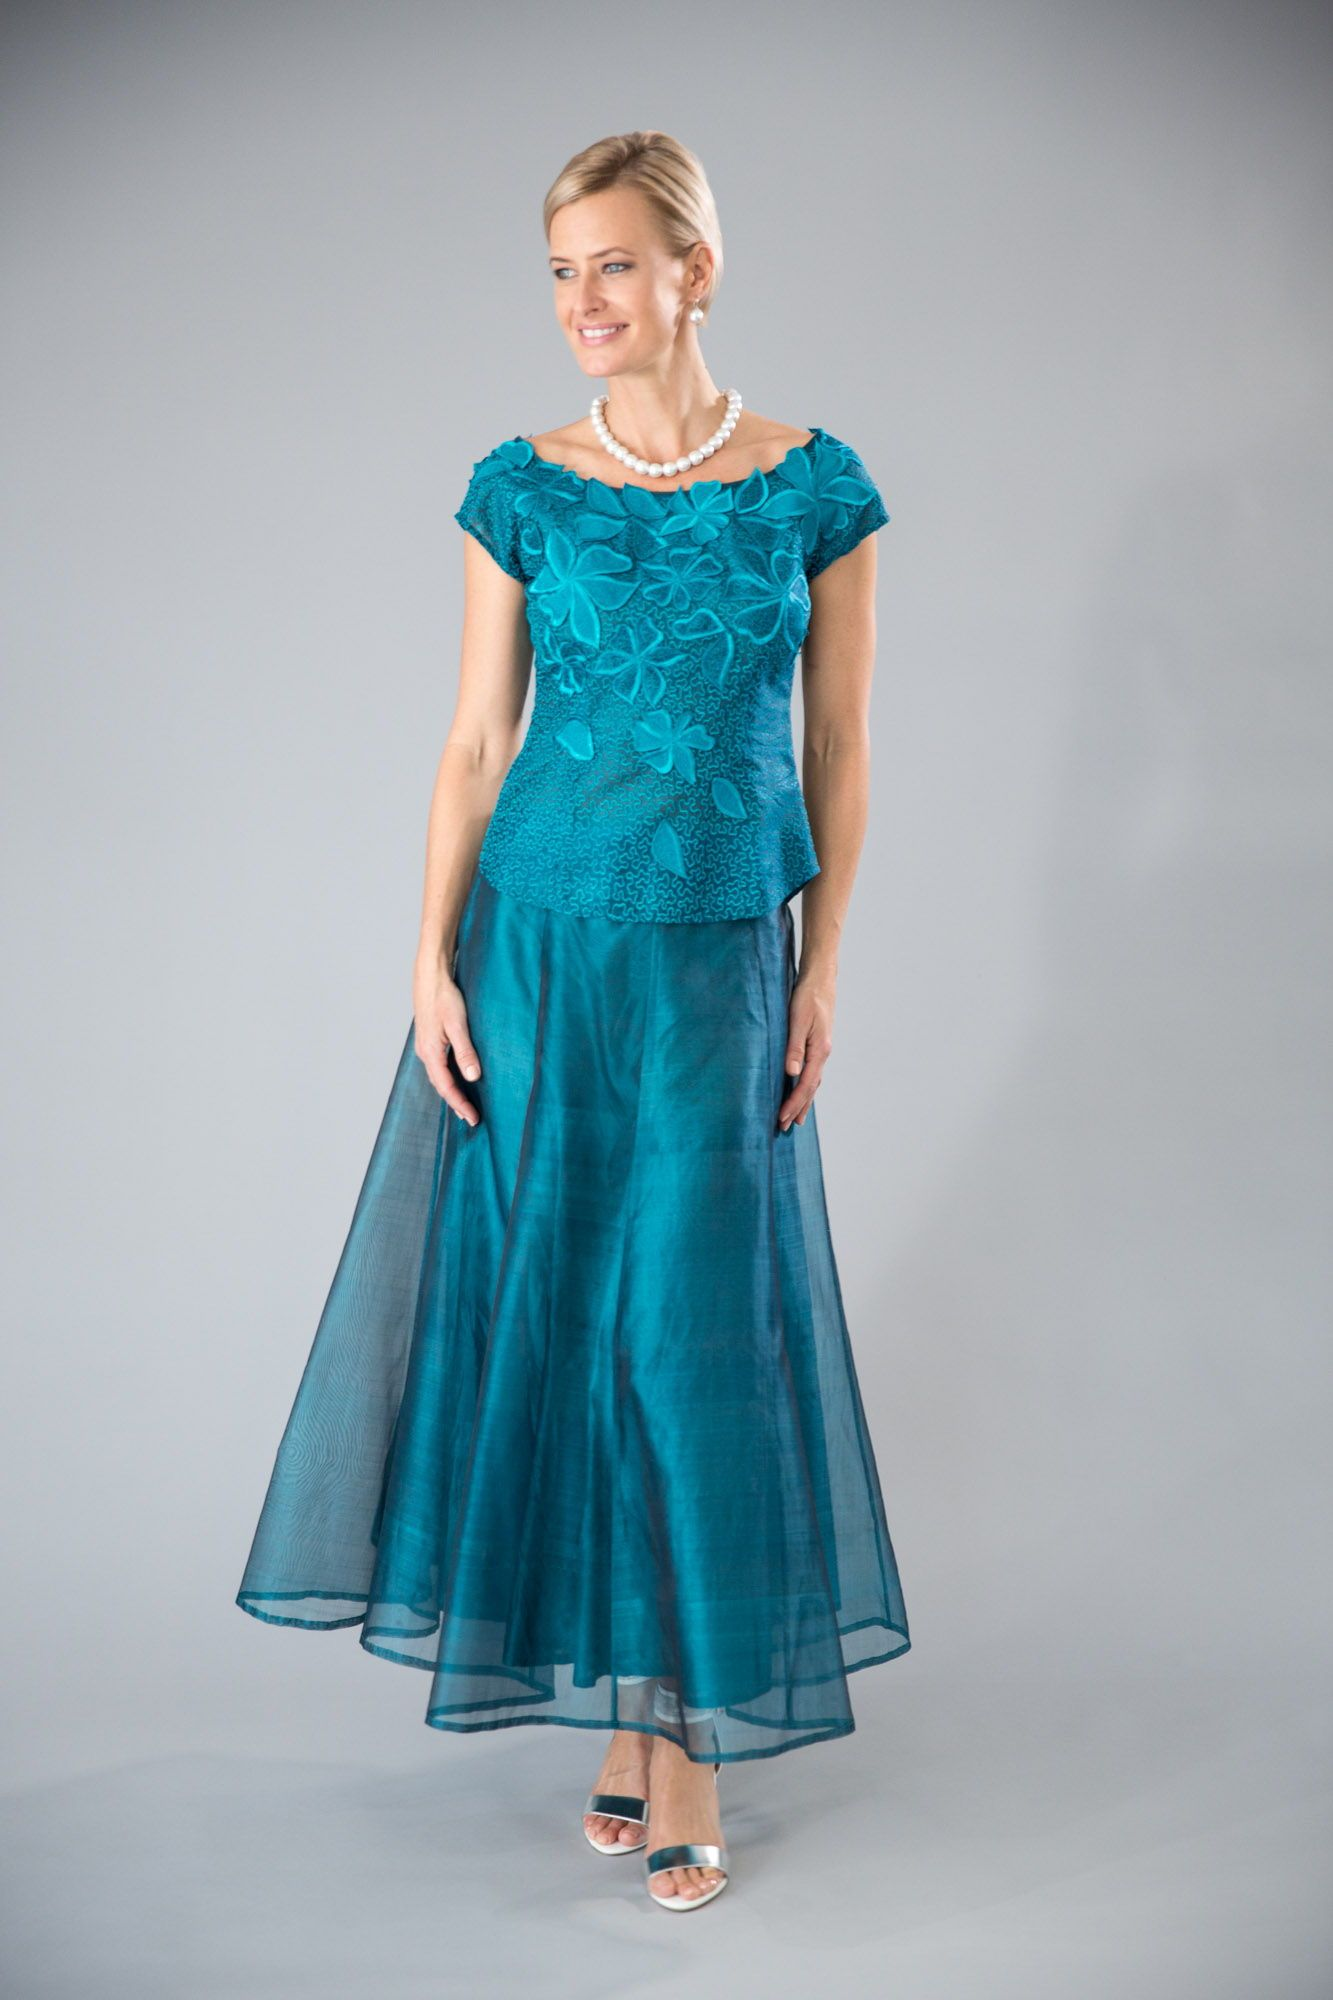 Teal for the modern and elegant mother of the bride and